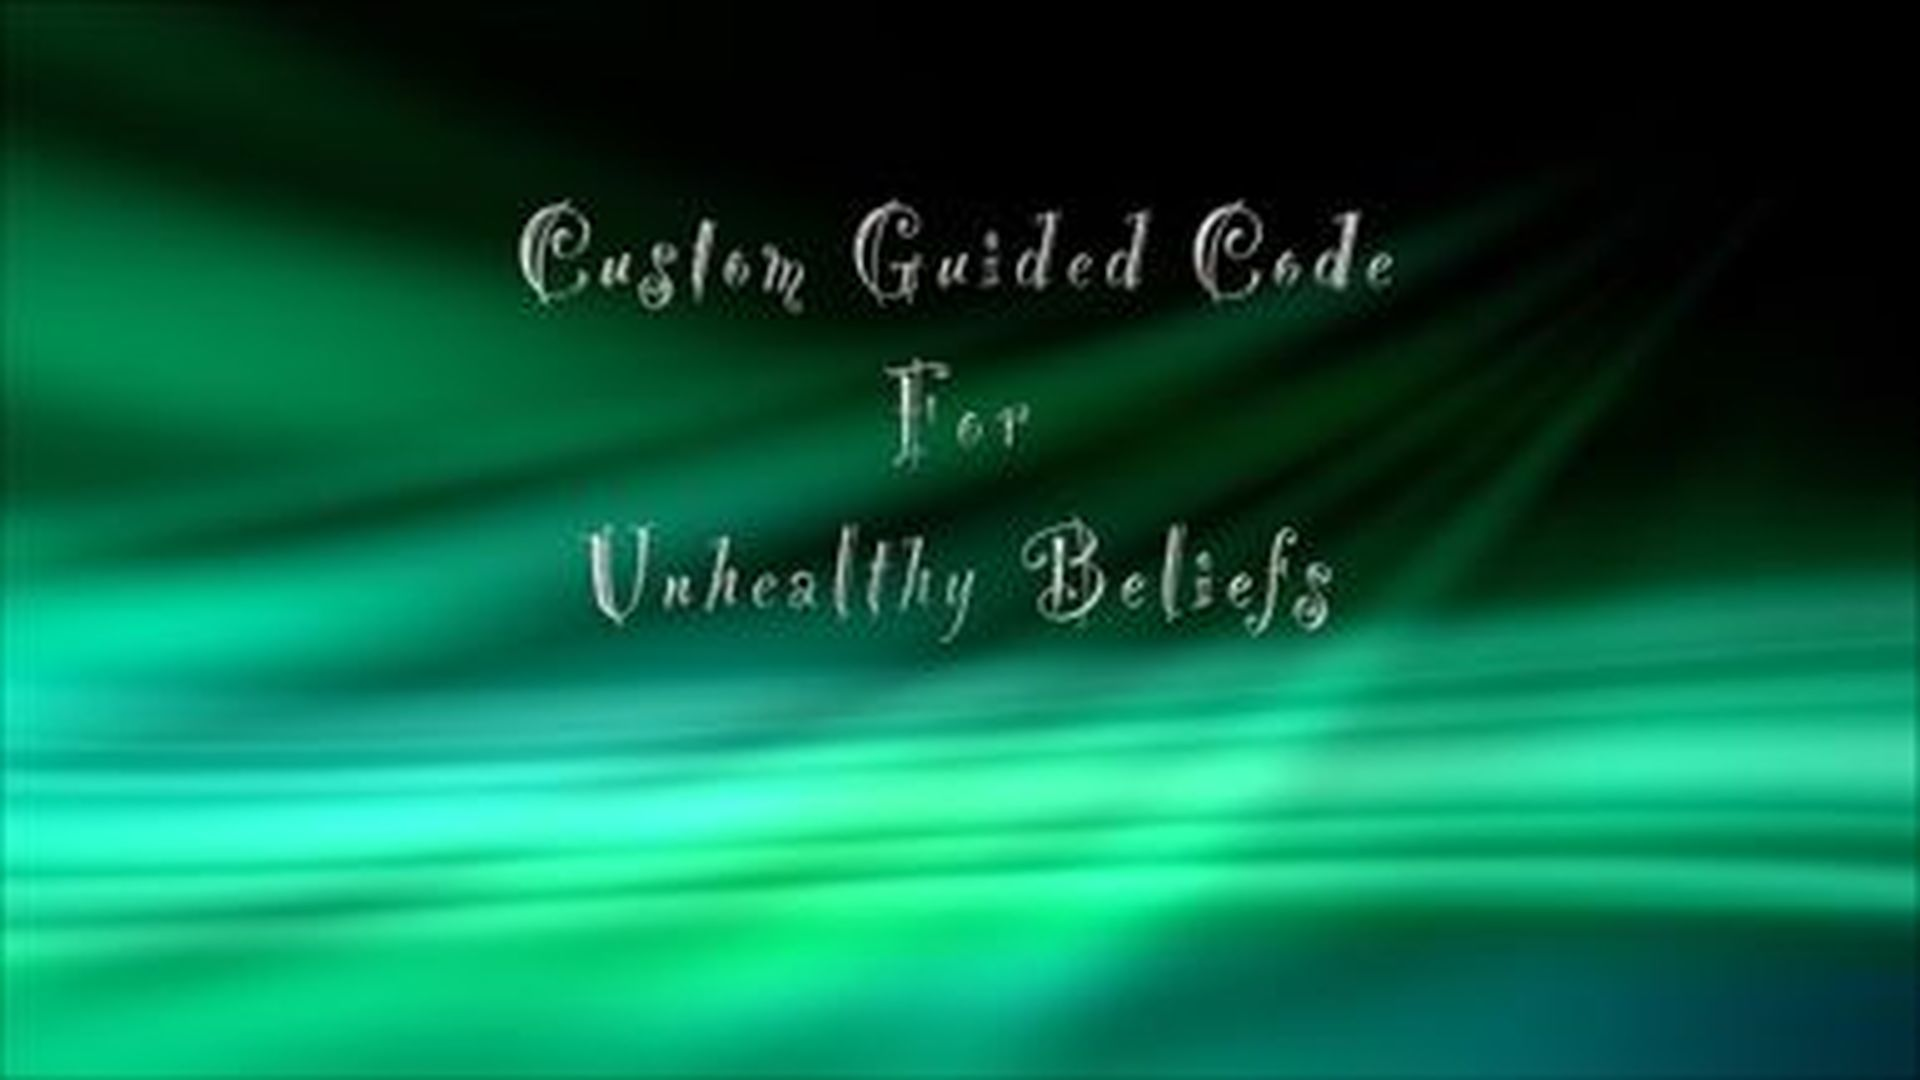 Custom Guided Code for Unhealthy Beliefs